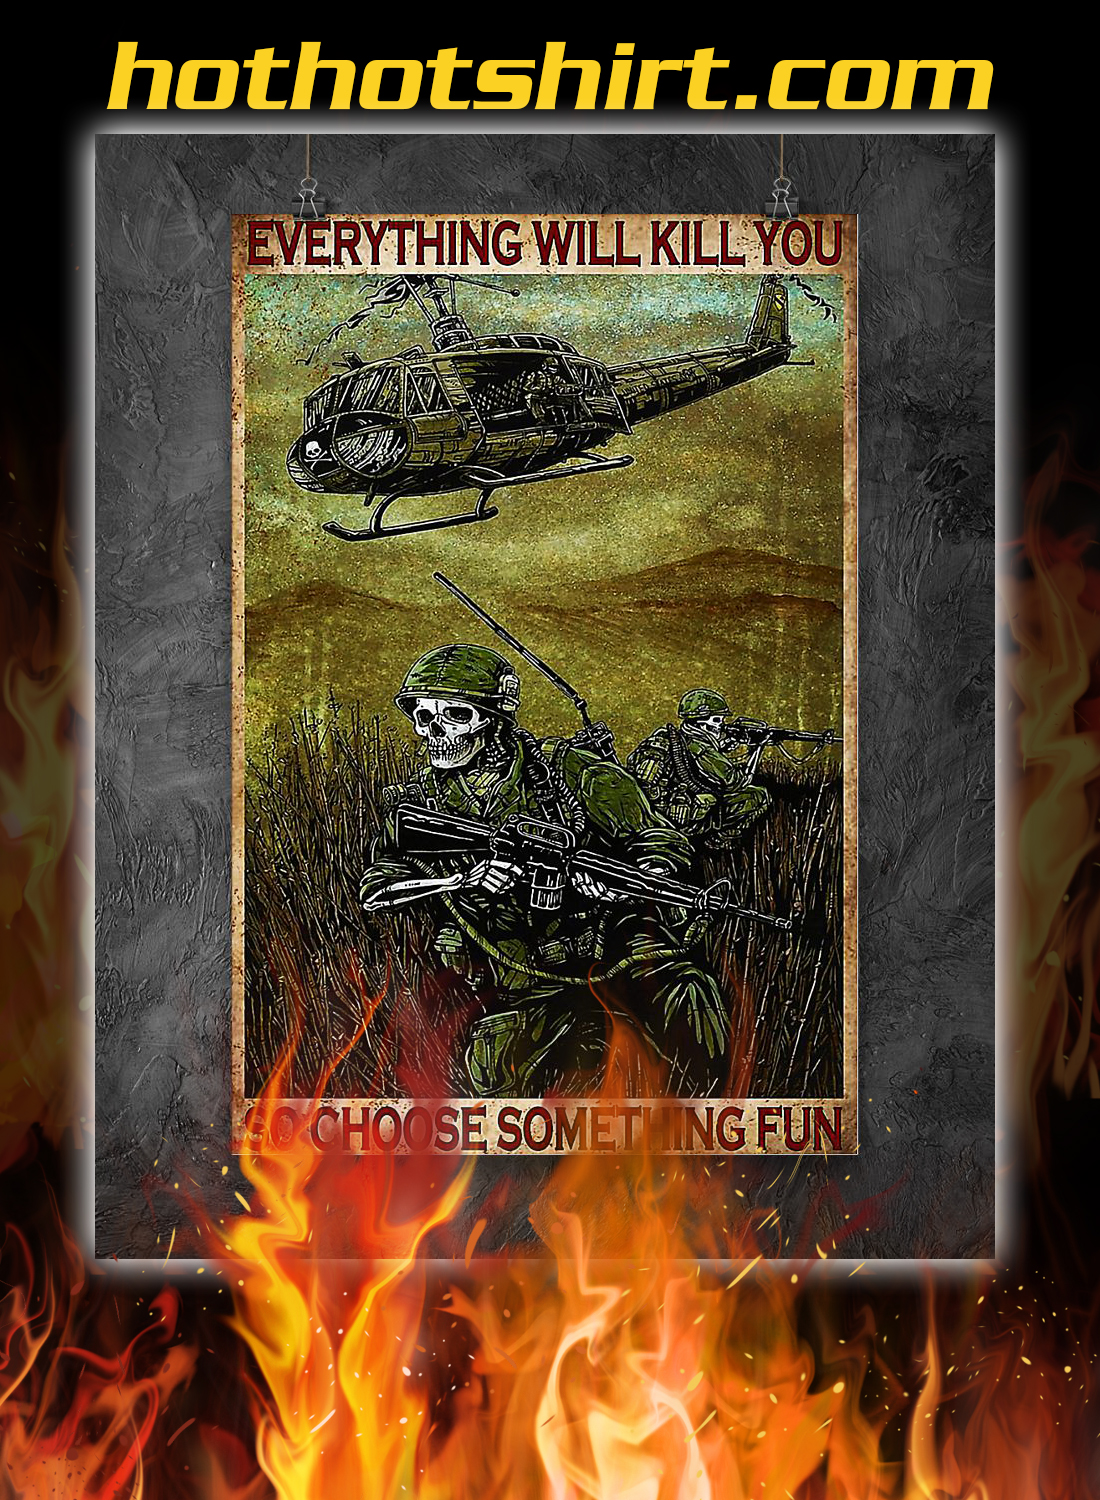 Skull soldier everything will kill you so choose something fun poster 1